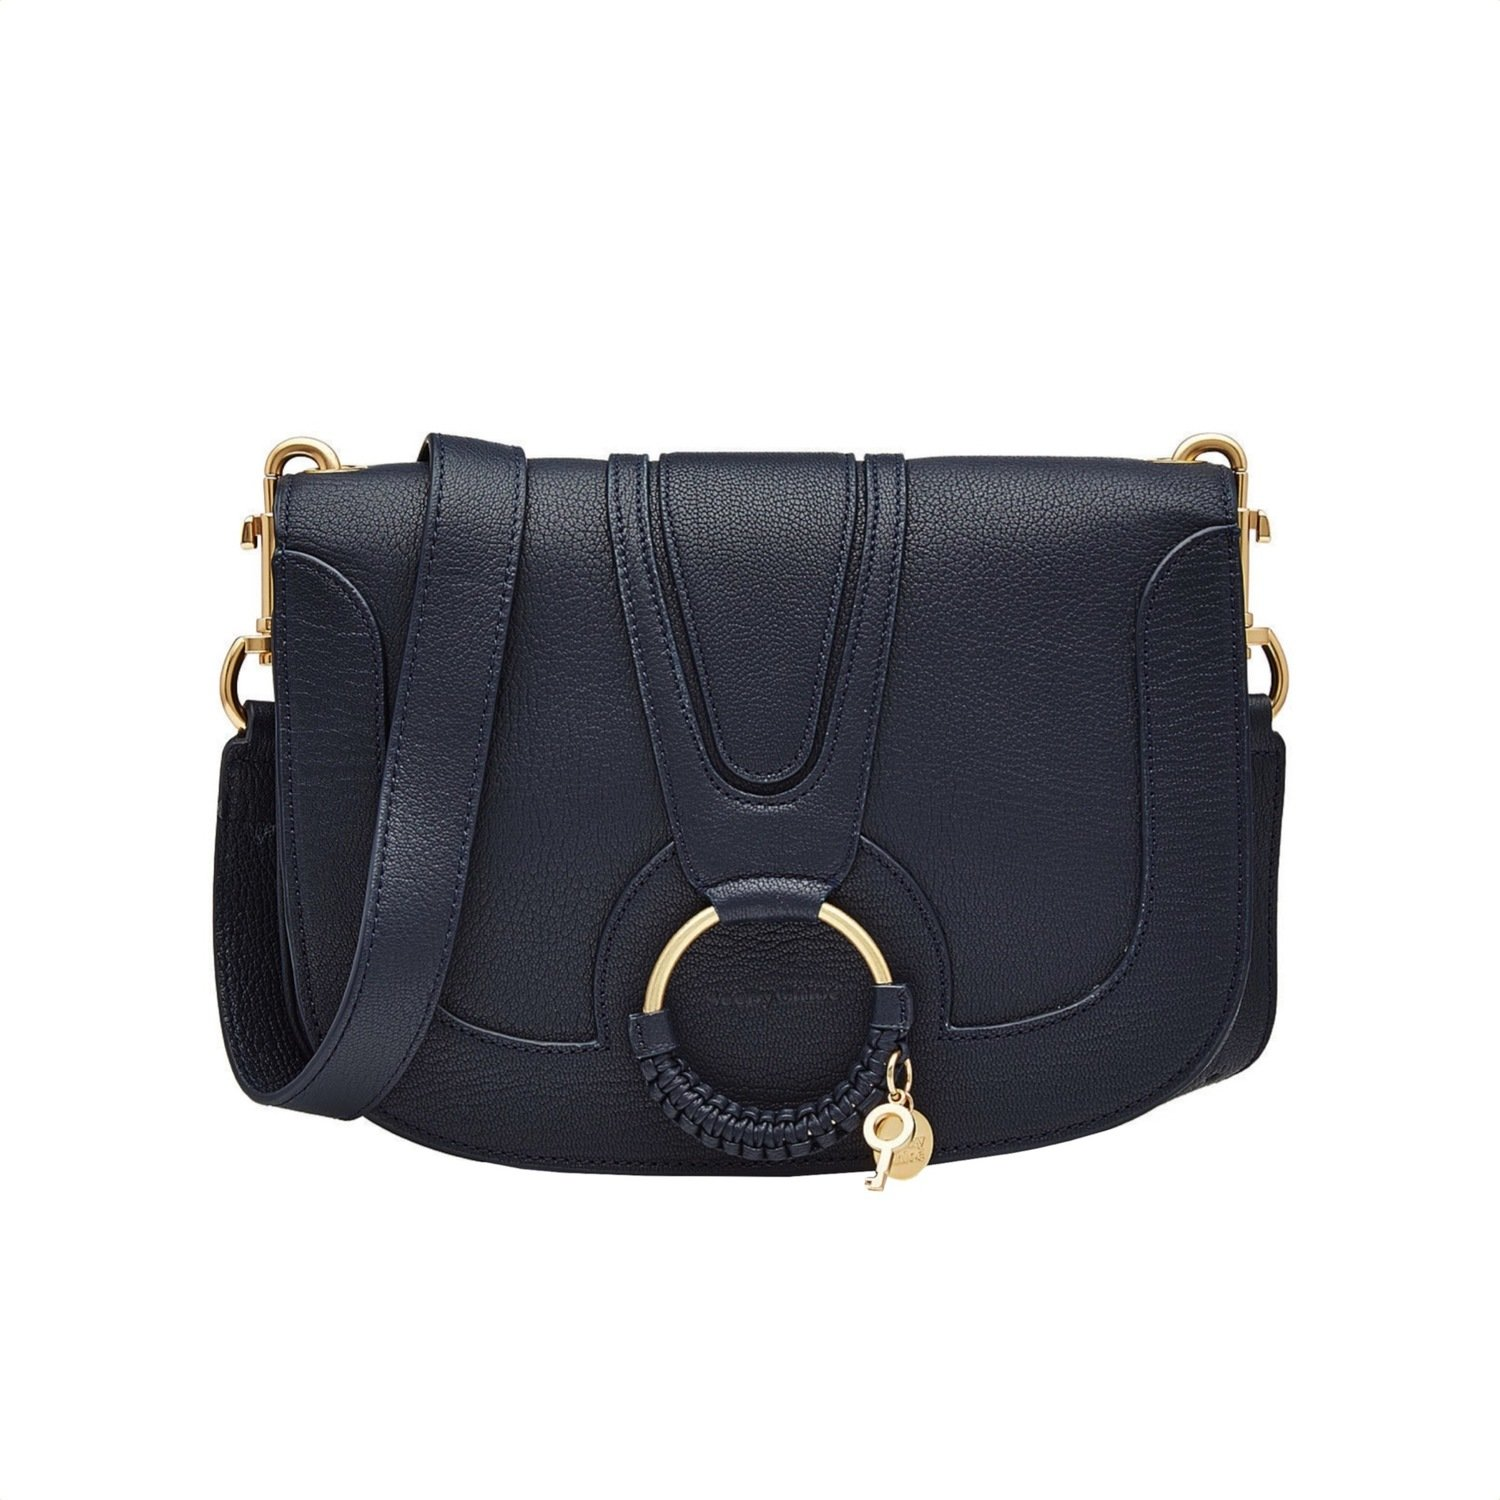 SEE BY CHLOÉ - Hana Medium Crossbody Bag - Ultramarine